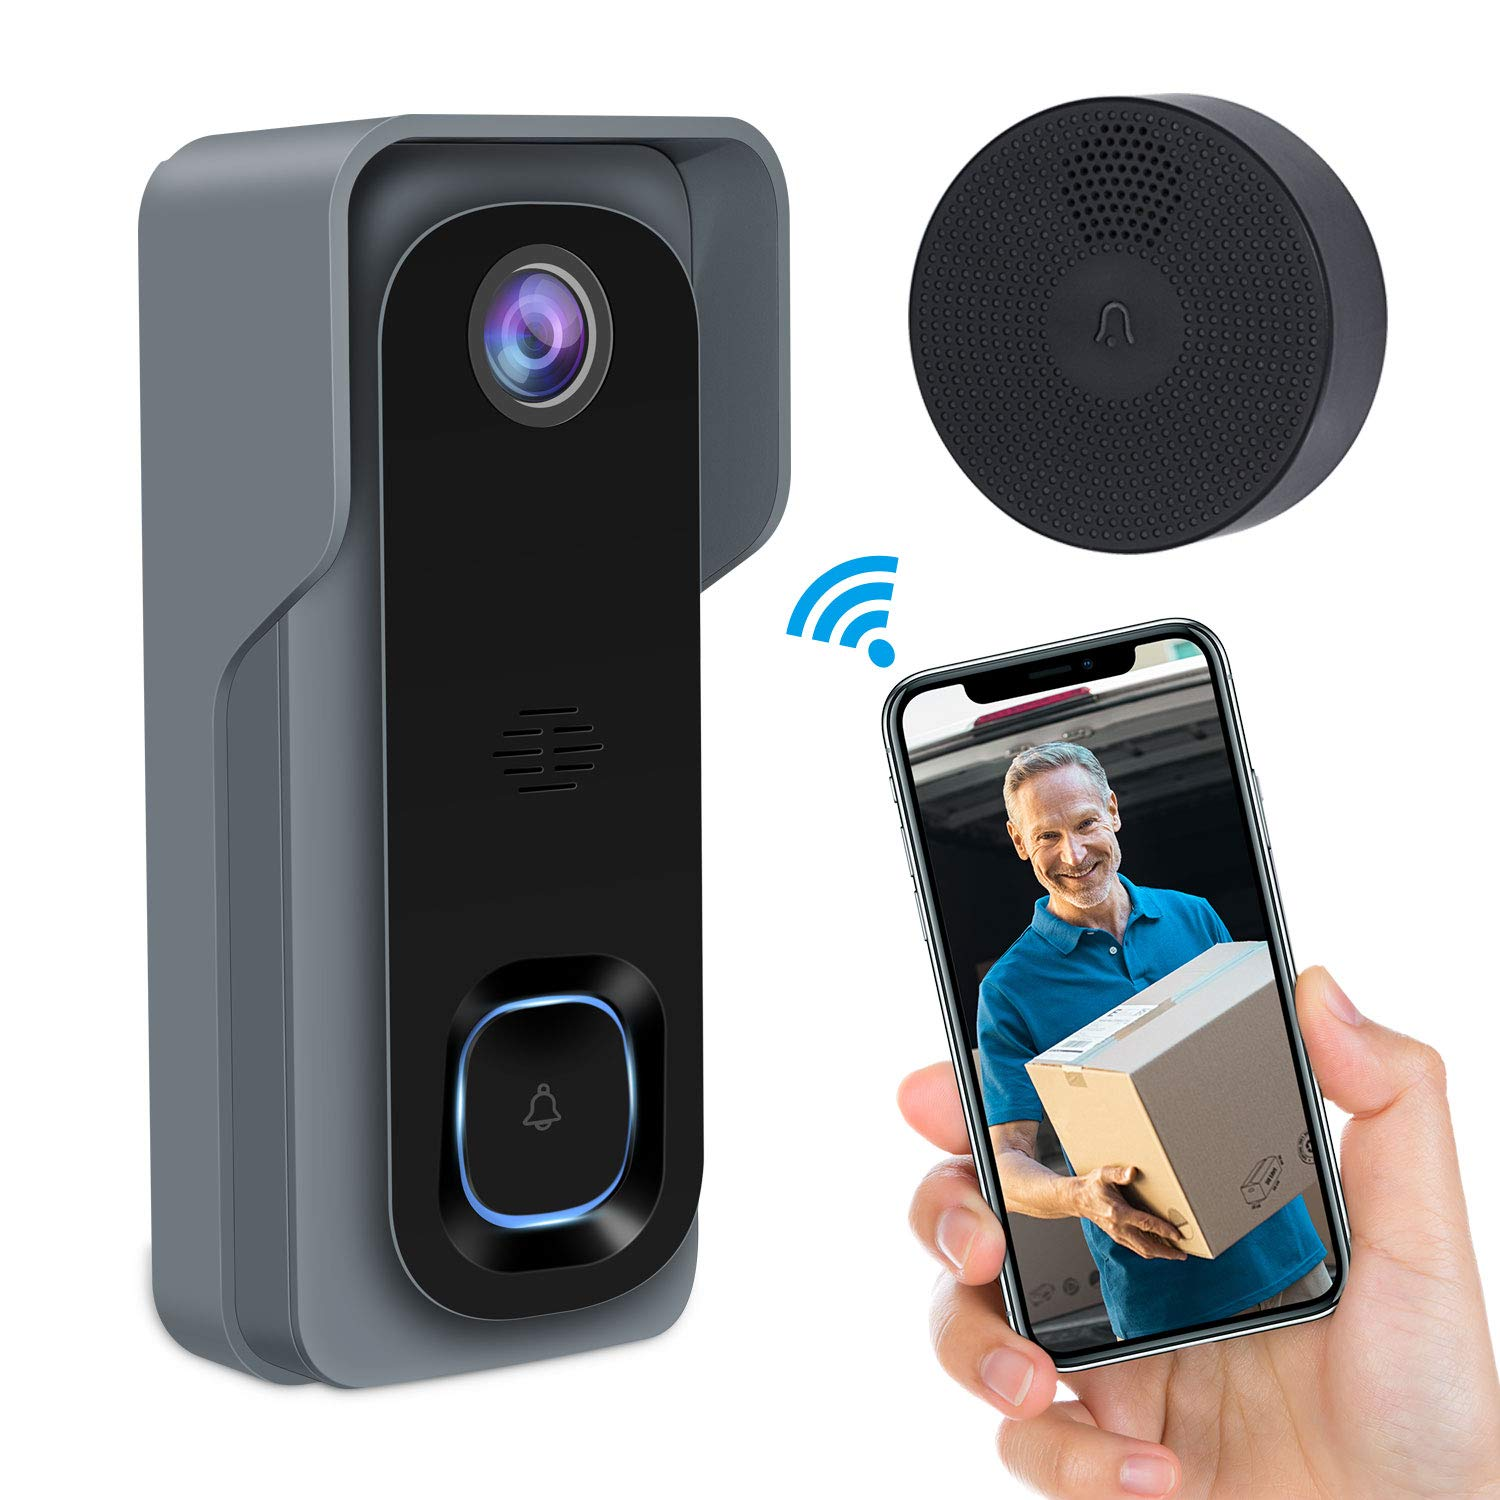 Video Doorbell,GEREE WiFi Smart Wireless Doorbell 1080P HD Security Home Camera Real-Time Video and Two-Way Talk, Night Vision, PIR Motion Detection 166 Wide Angle Lens 2019 Newest Upgrade